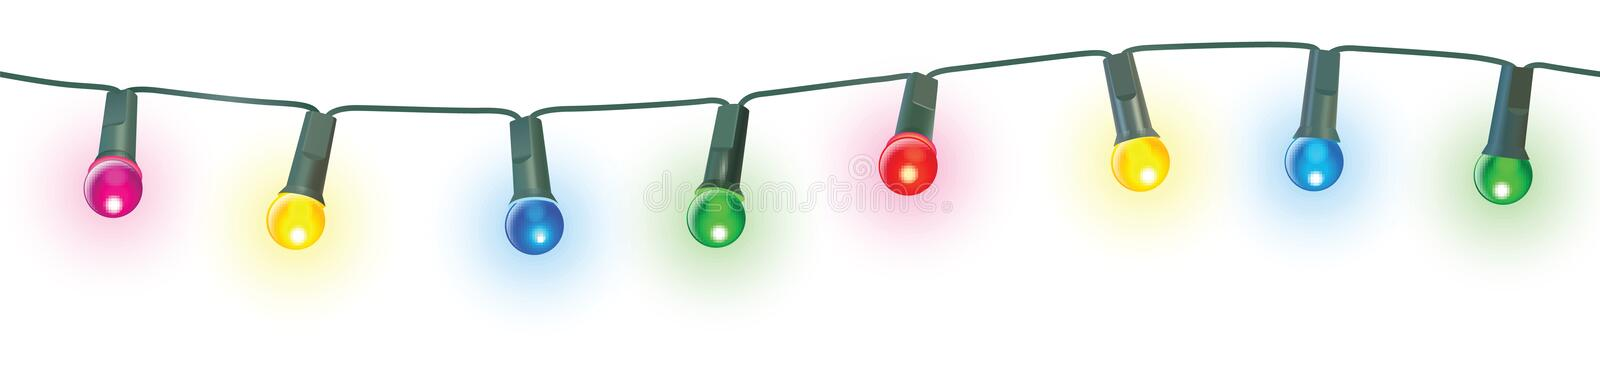 Christmas lights. Seamless christmas lights vector illustration royalty free illustration